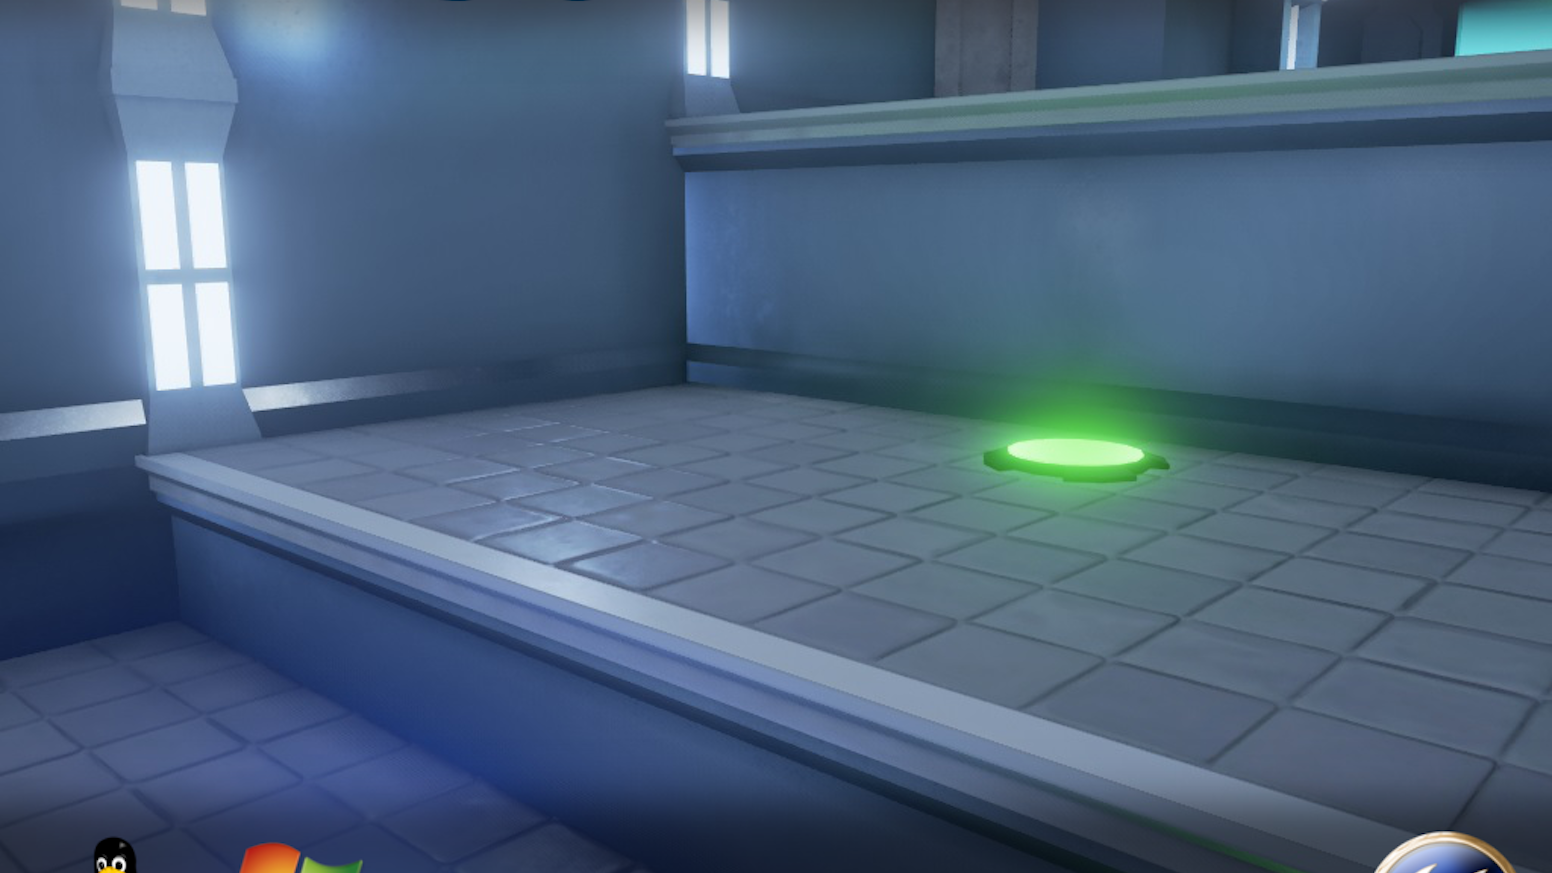 Jumper - Unreal Engine 4 - First Person Puzzle Game by Alan Aldred